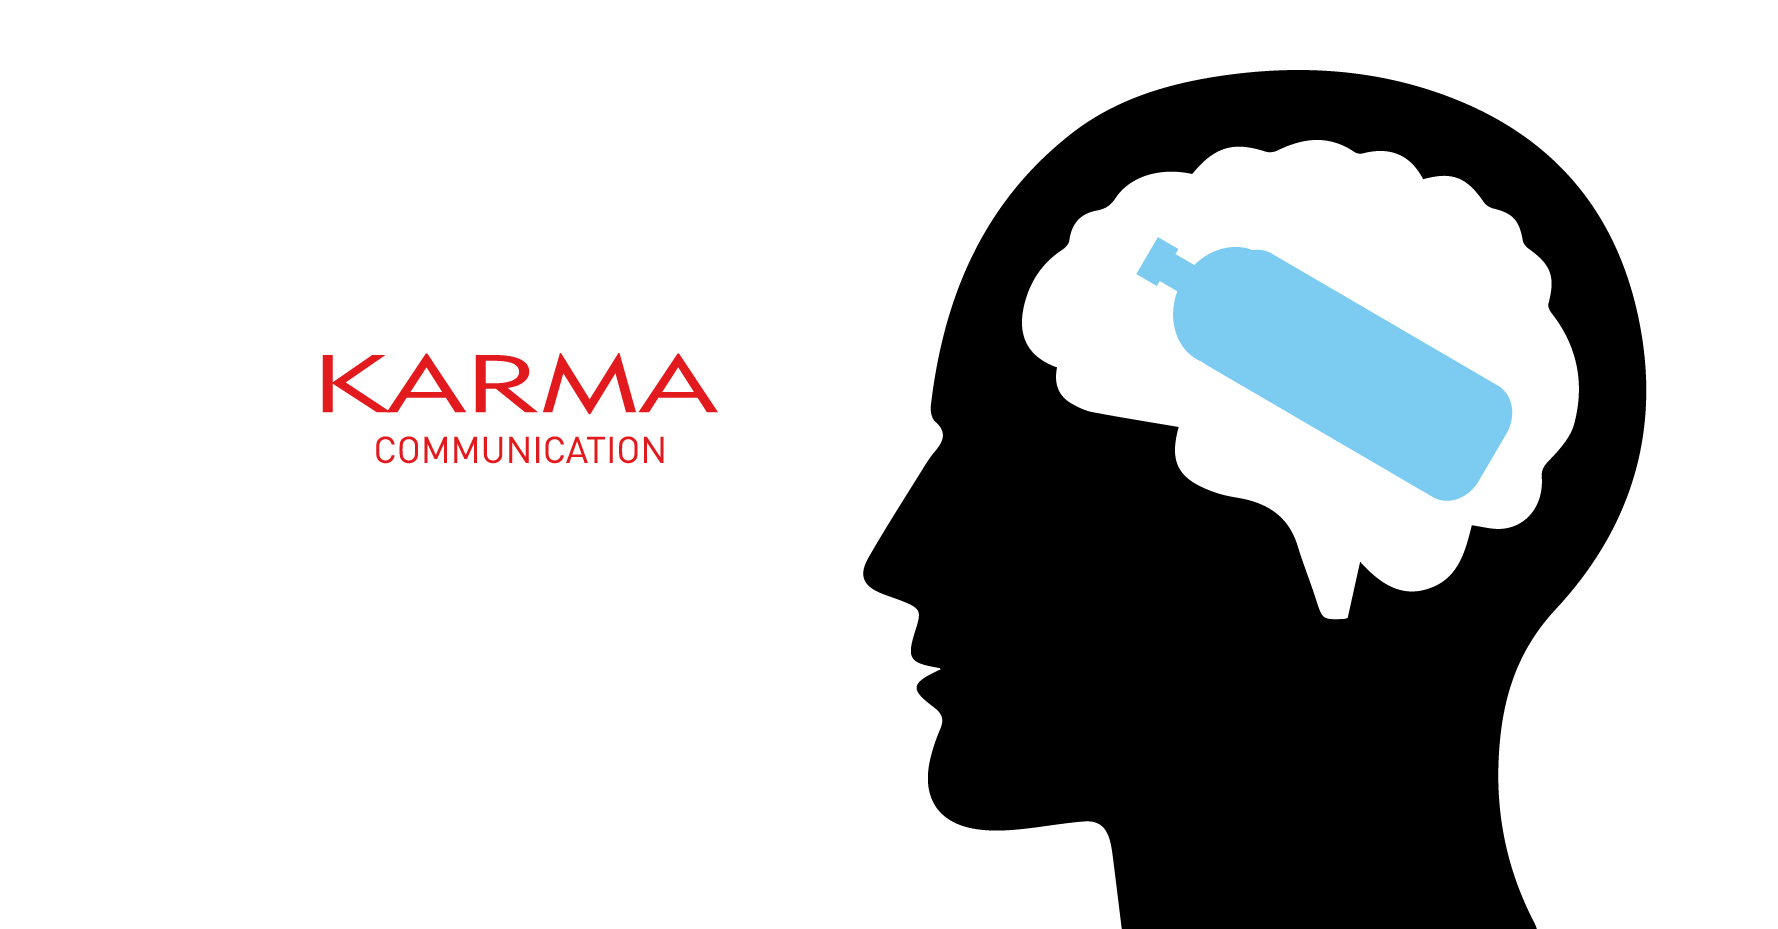 Karma Communication - Acqua benzina